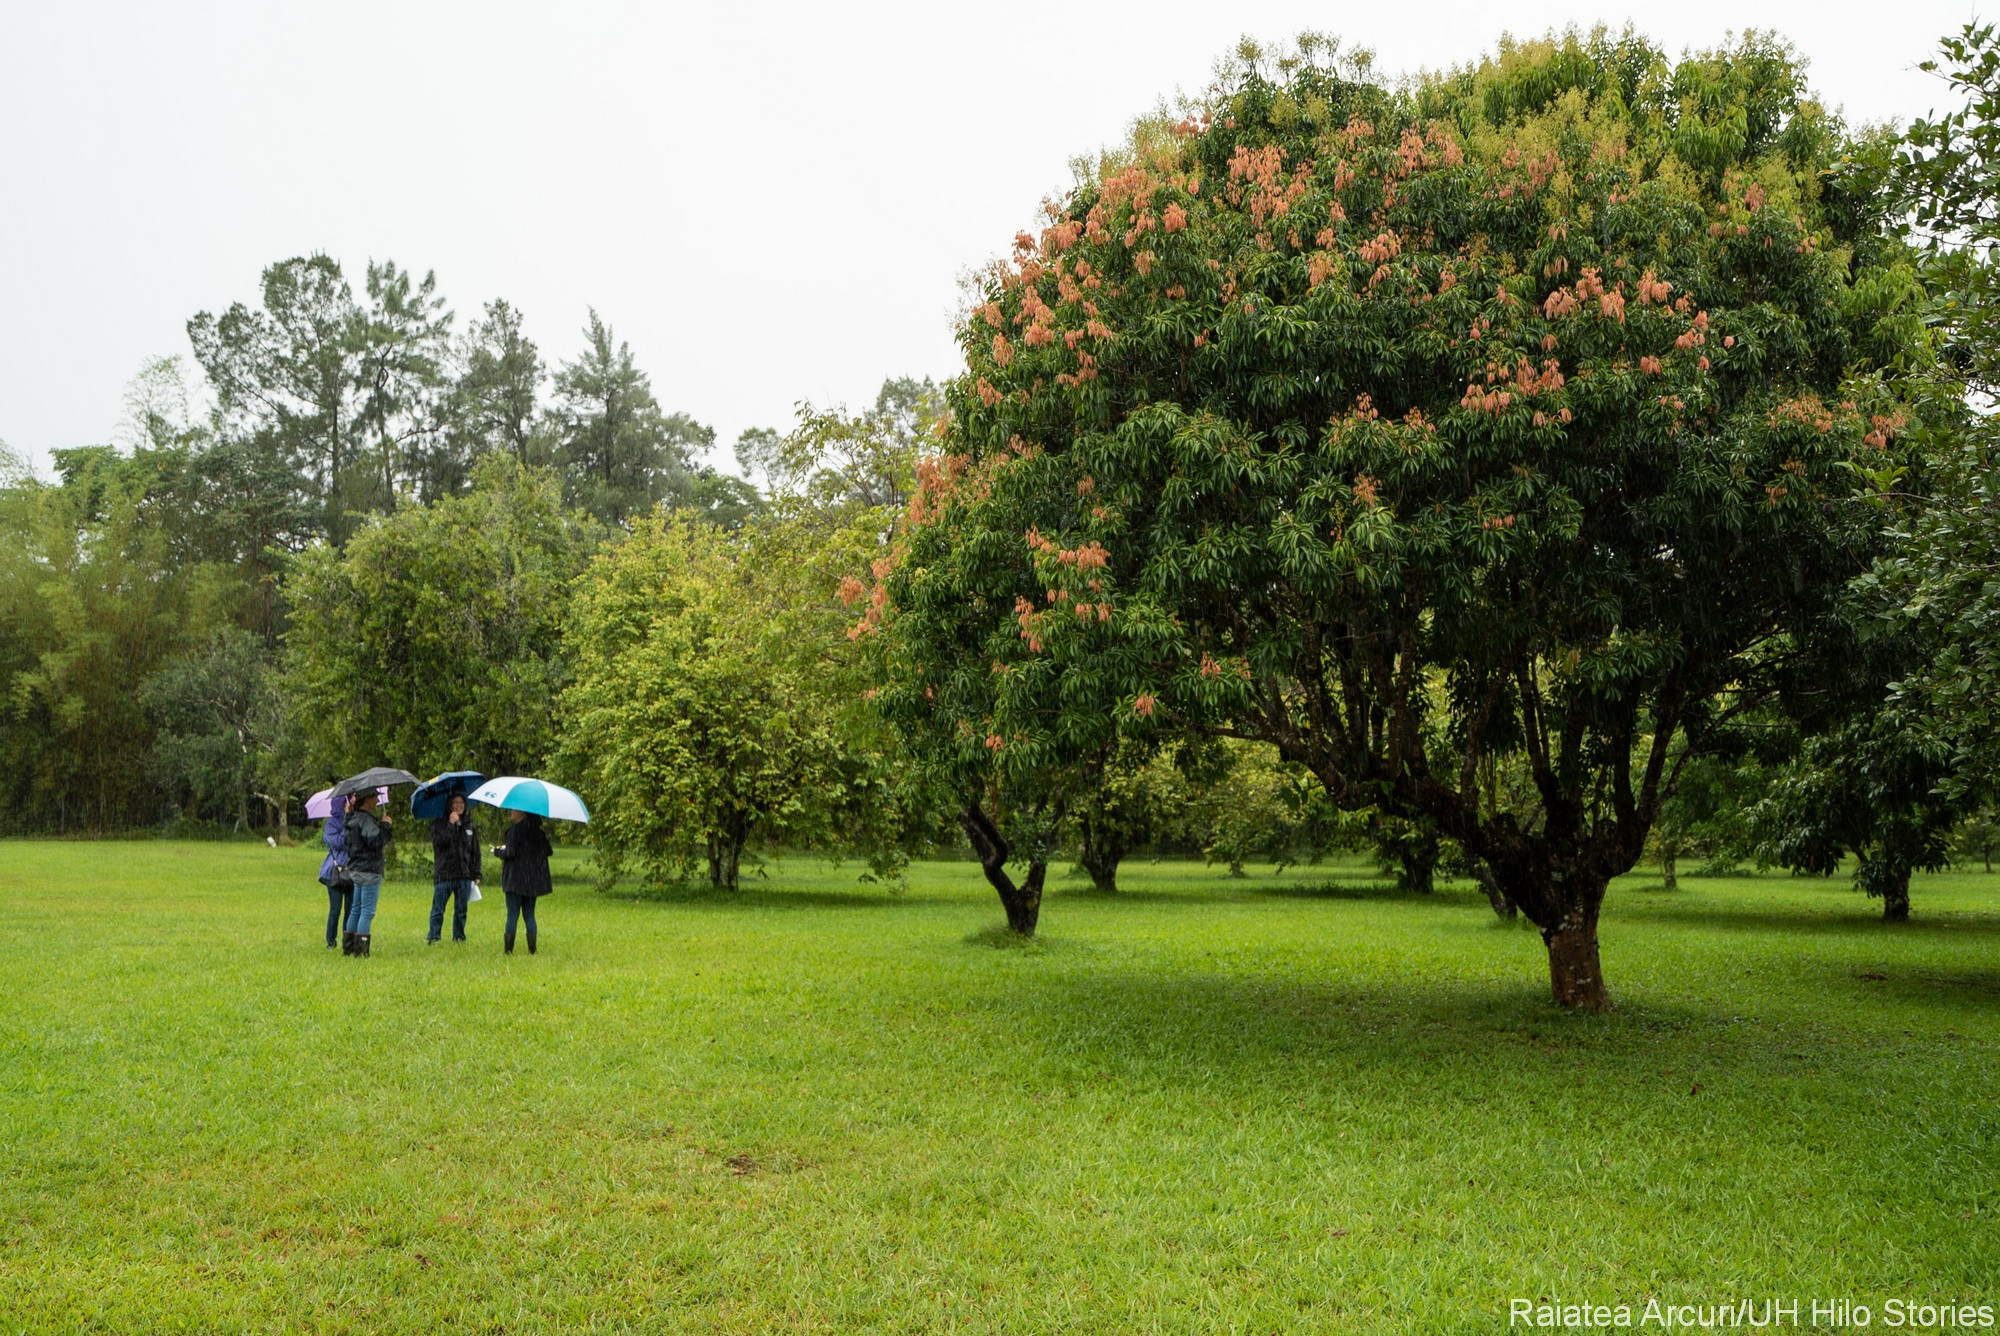 A group of four with umbrellas in the orchard. Beautiful large flowering tree to the side.